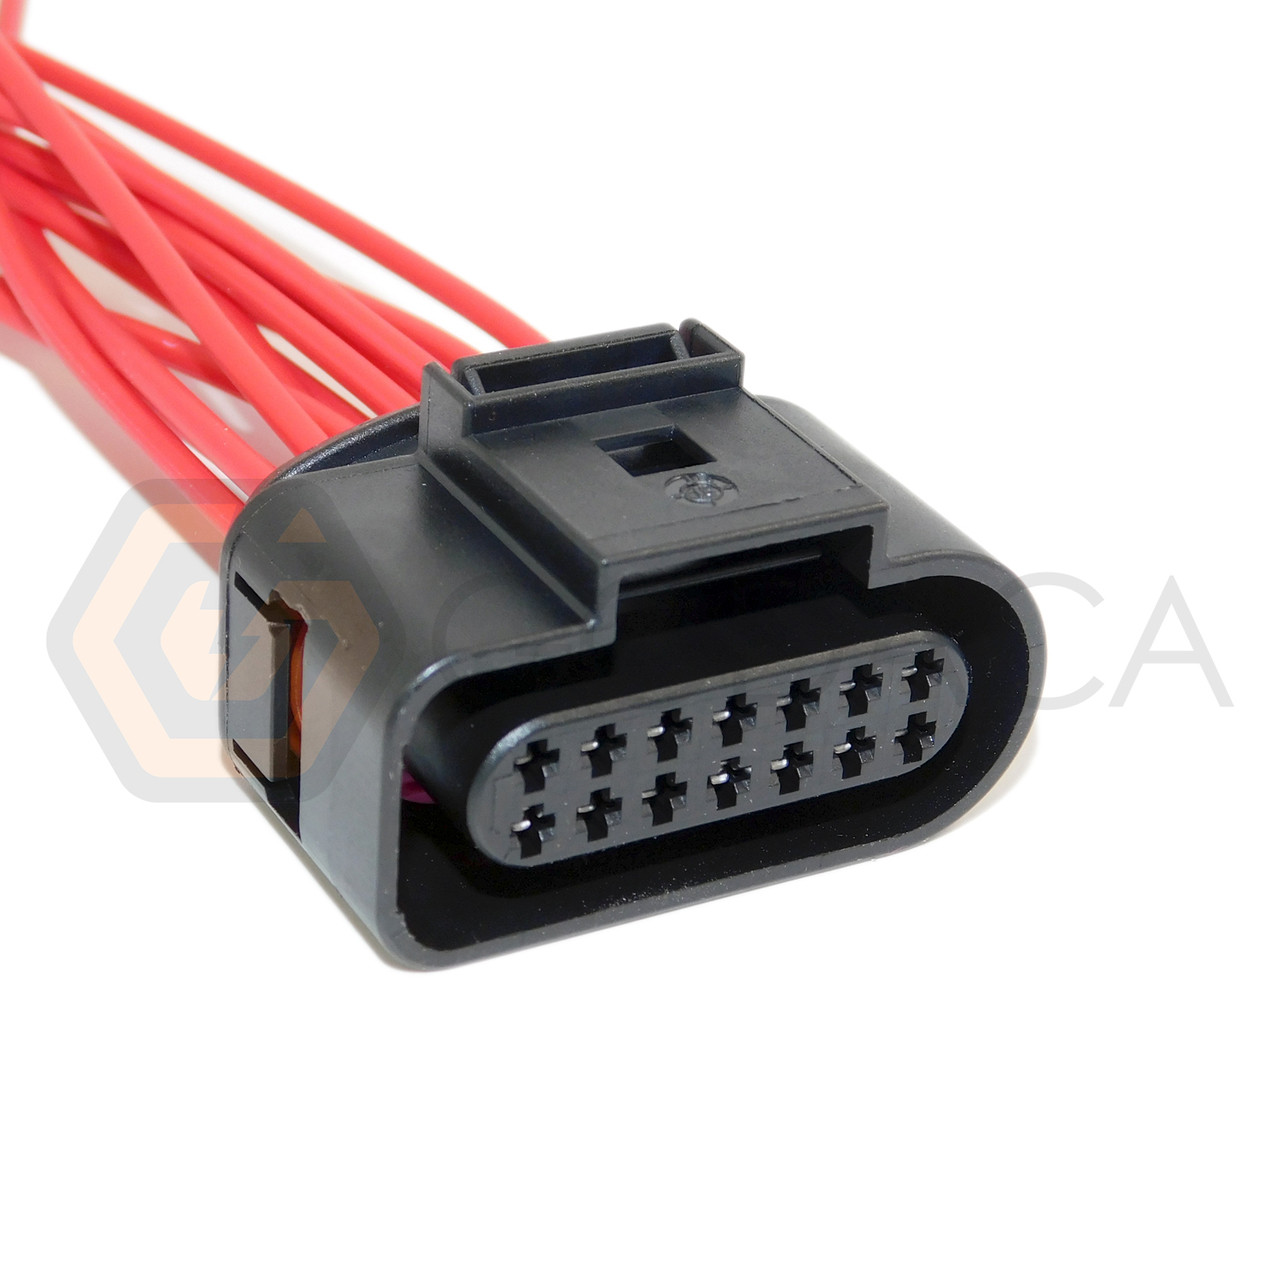 small resolution of 1x connector 14 way 14 pin for gearbox audi vw 6x0 973 717 godaca llc